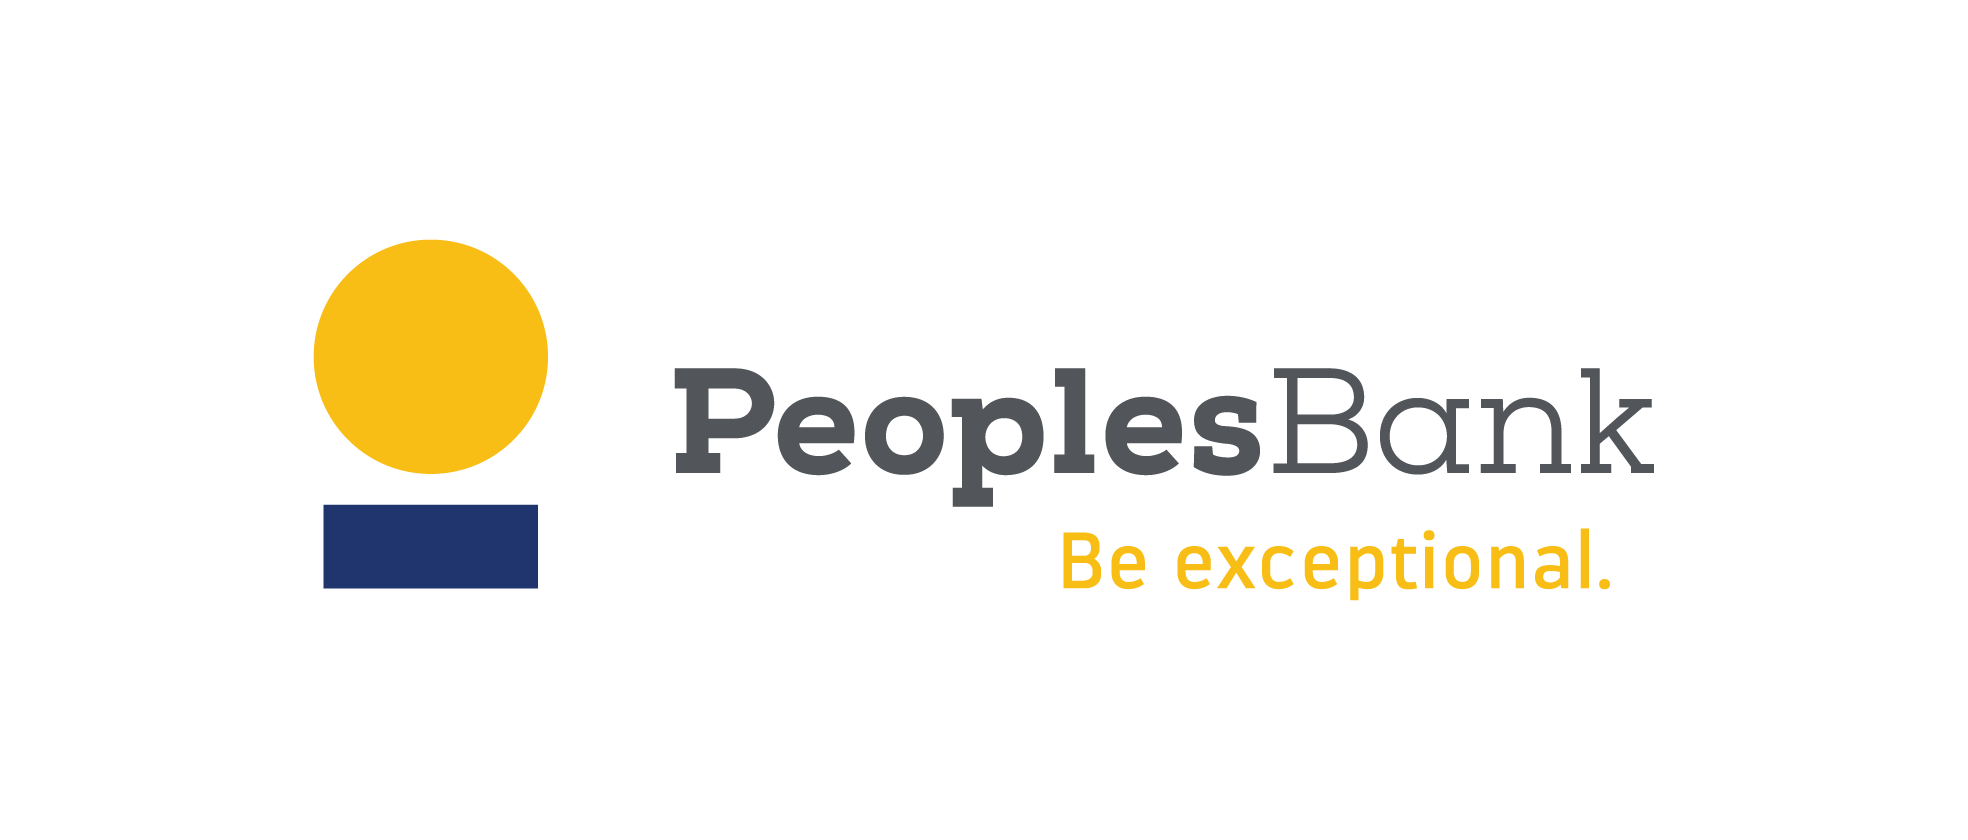 Peoples Bank - Be Exceptional